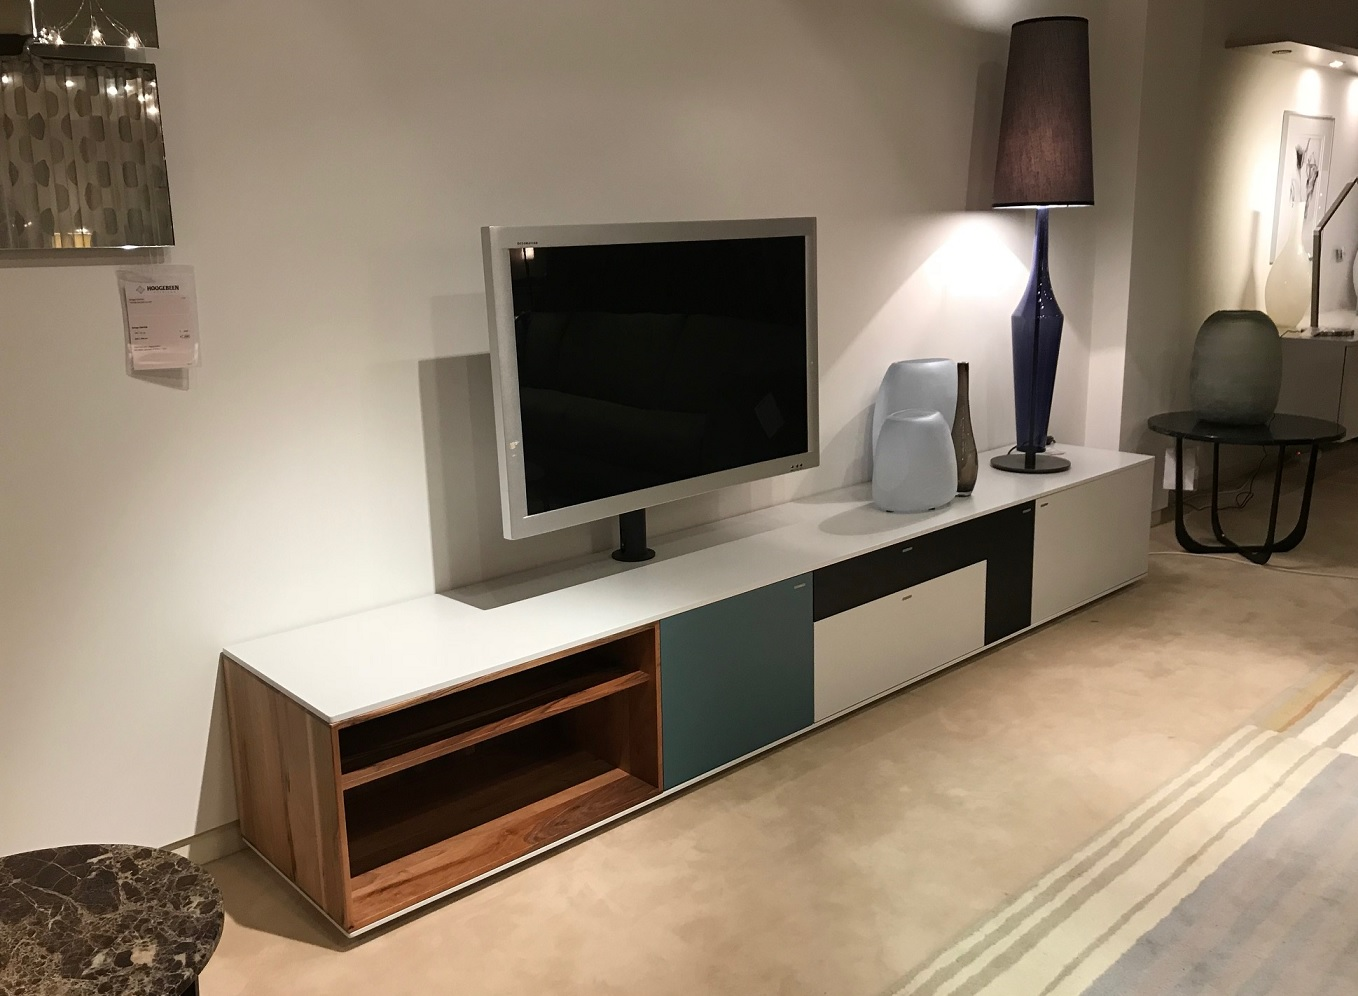 Interstar Tv Meubel : Interstar tv dressoir interstar meubelen tv meubels